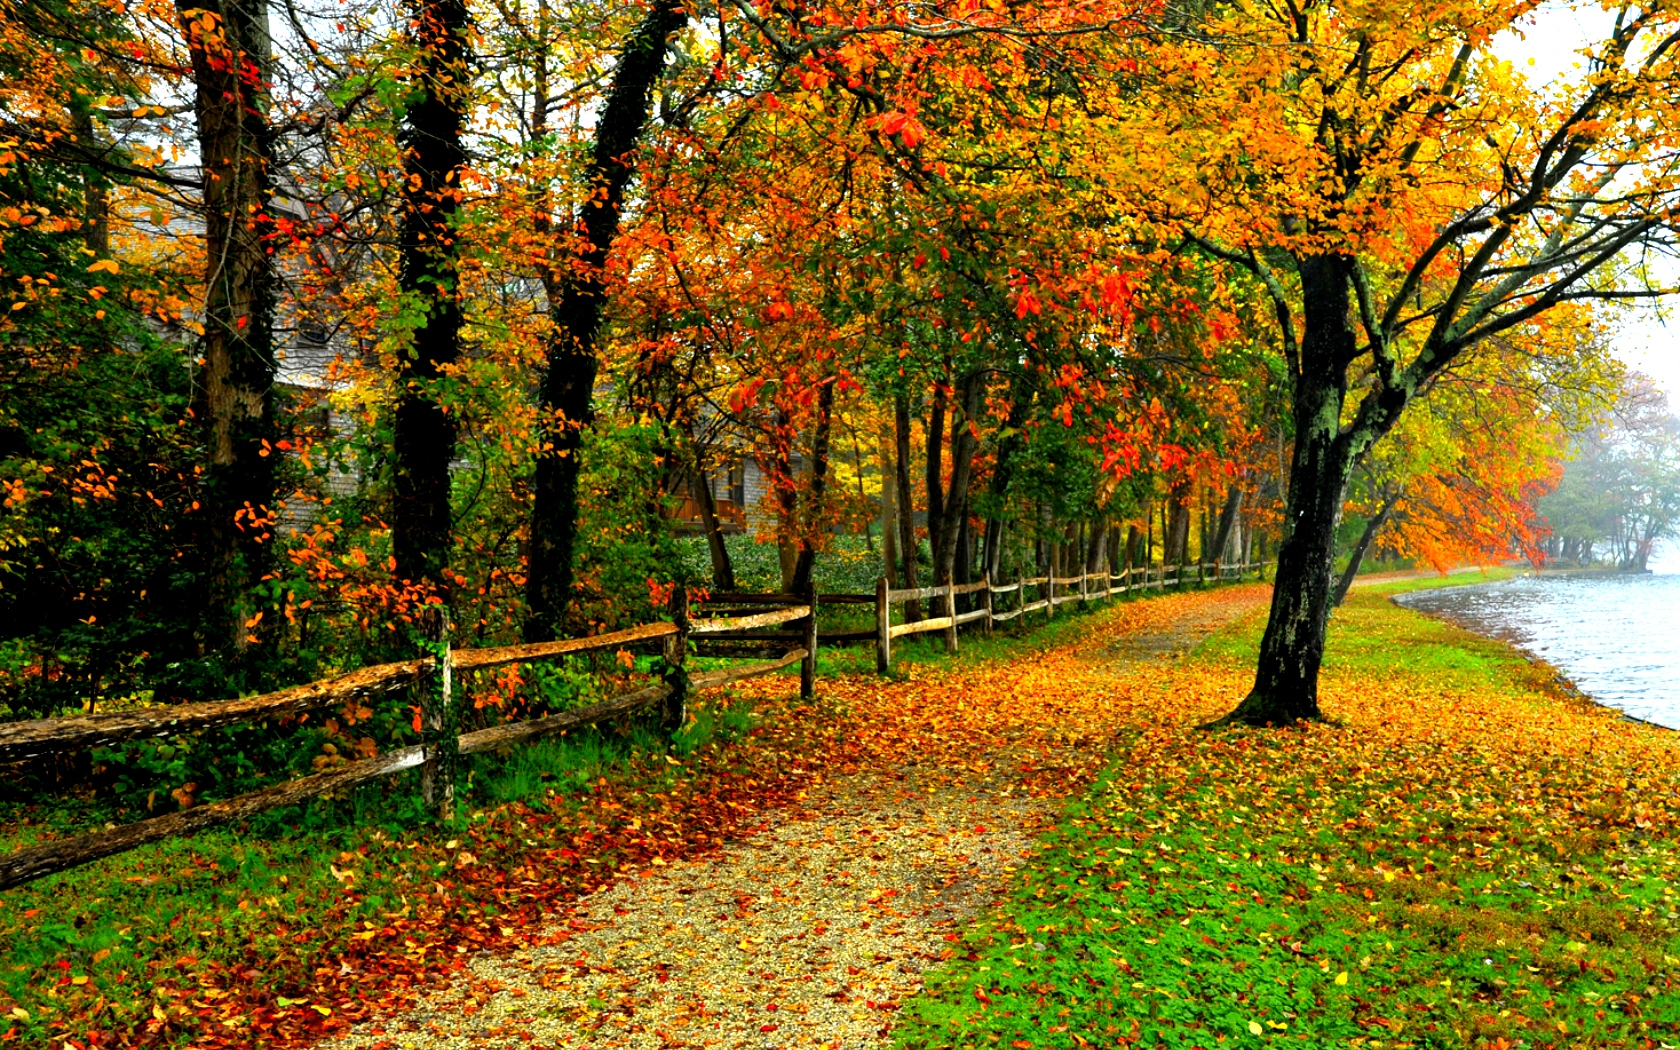 Fall Foliage Wallpapers Pack 732: Fall Foliage Desktop Wallpaper